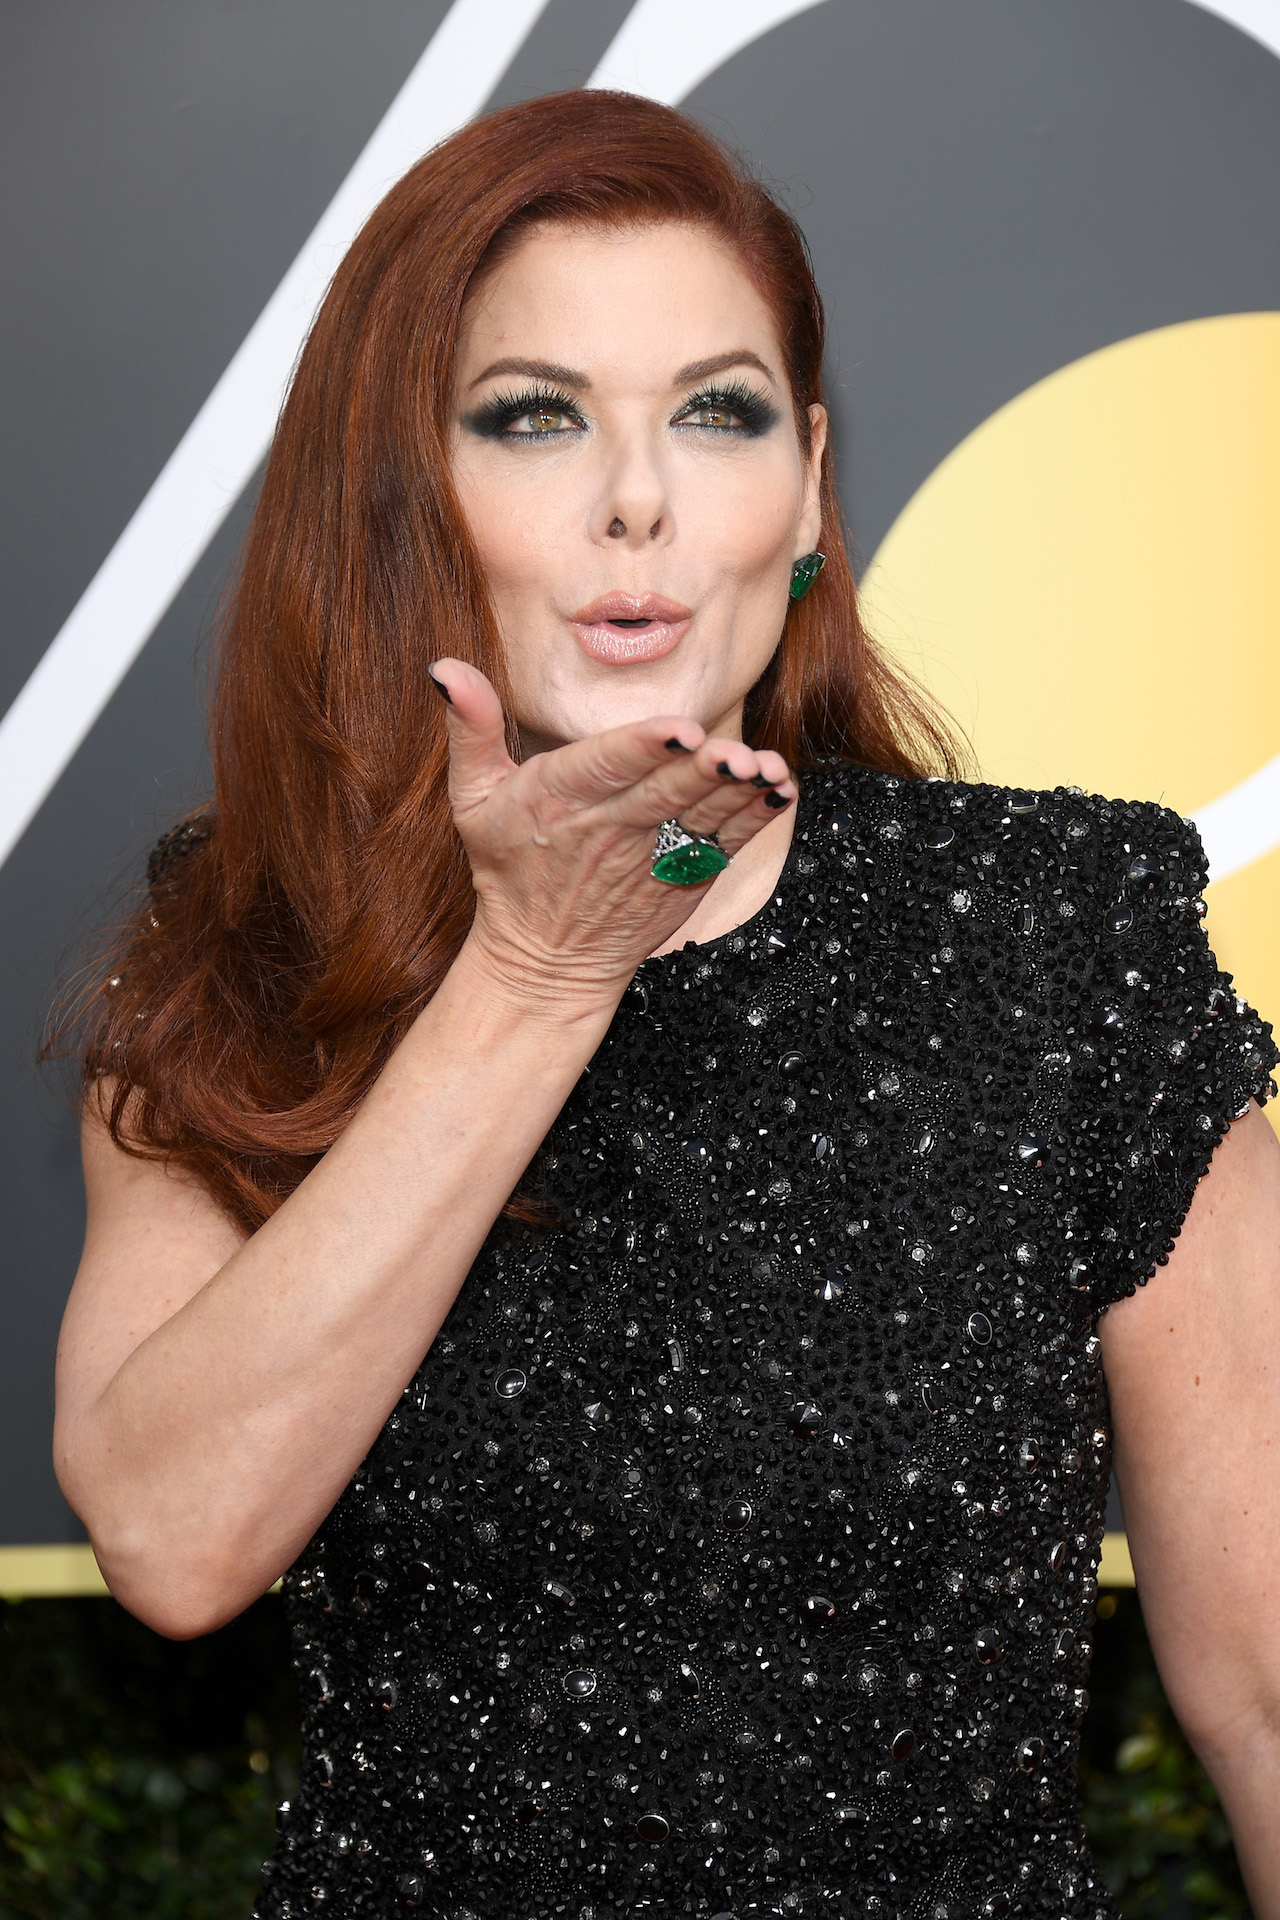 BEVERLY HILLS, CA - JANUARY 07: Actor Debra Messing attends The 75th Annual Golden Globe Awards at The Beverly Hilton Hotel on January 7, 2018 in Beverly Hills, California. (Photo by Venturelli/WireImage)